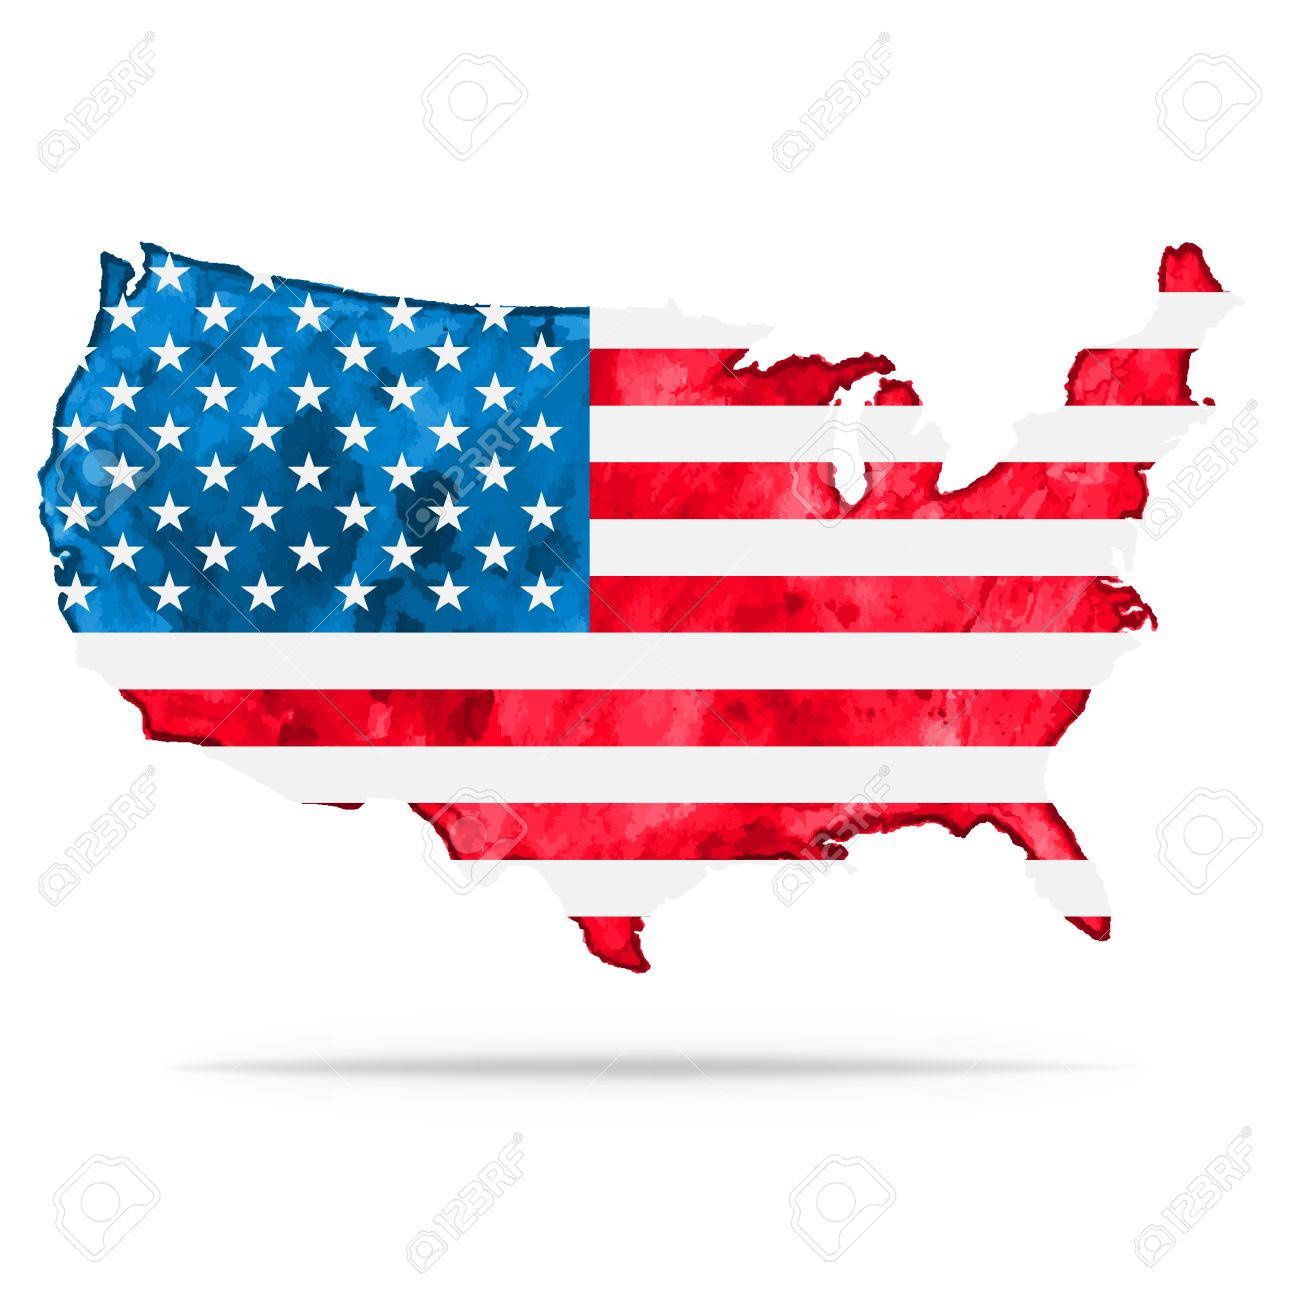 Usa Watercolor Vector Map With Flag Us Watercolor Vector Map - American-flag-us-map